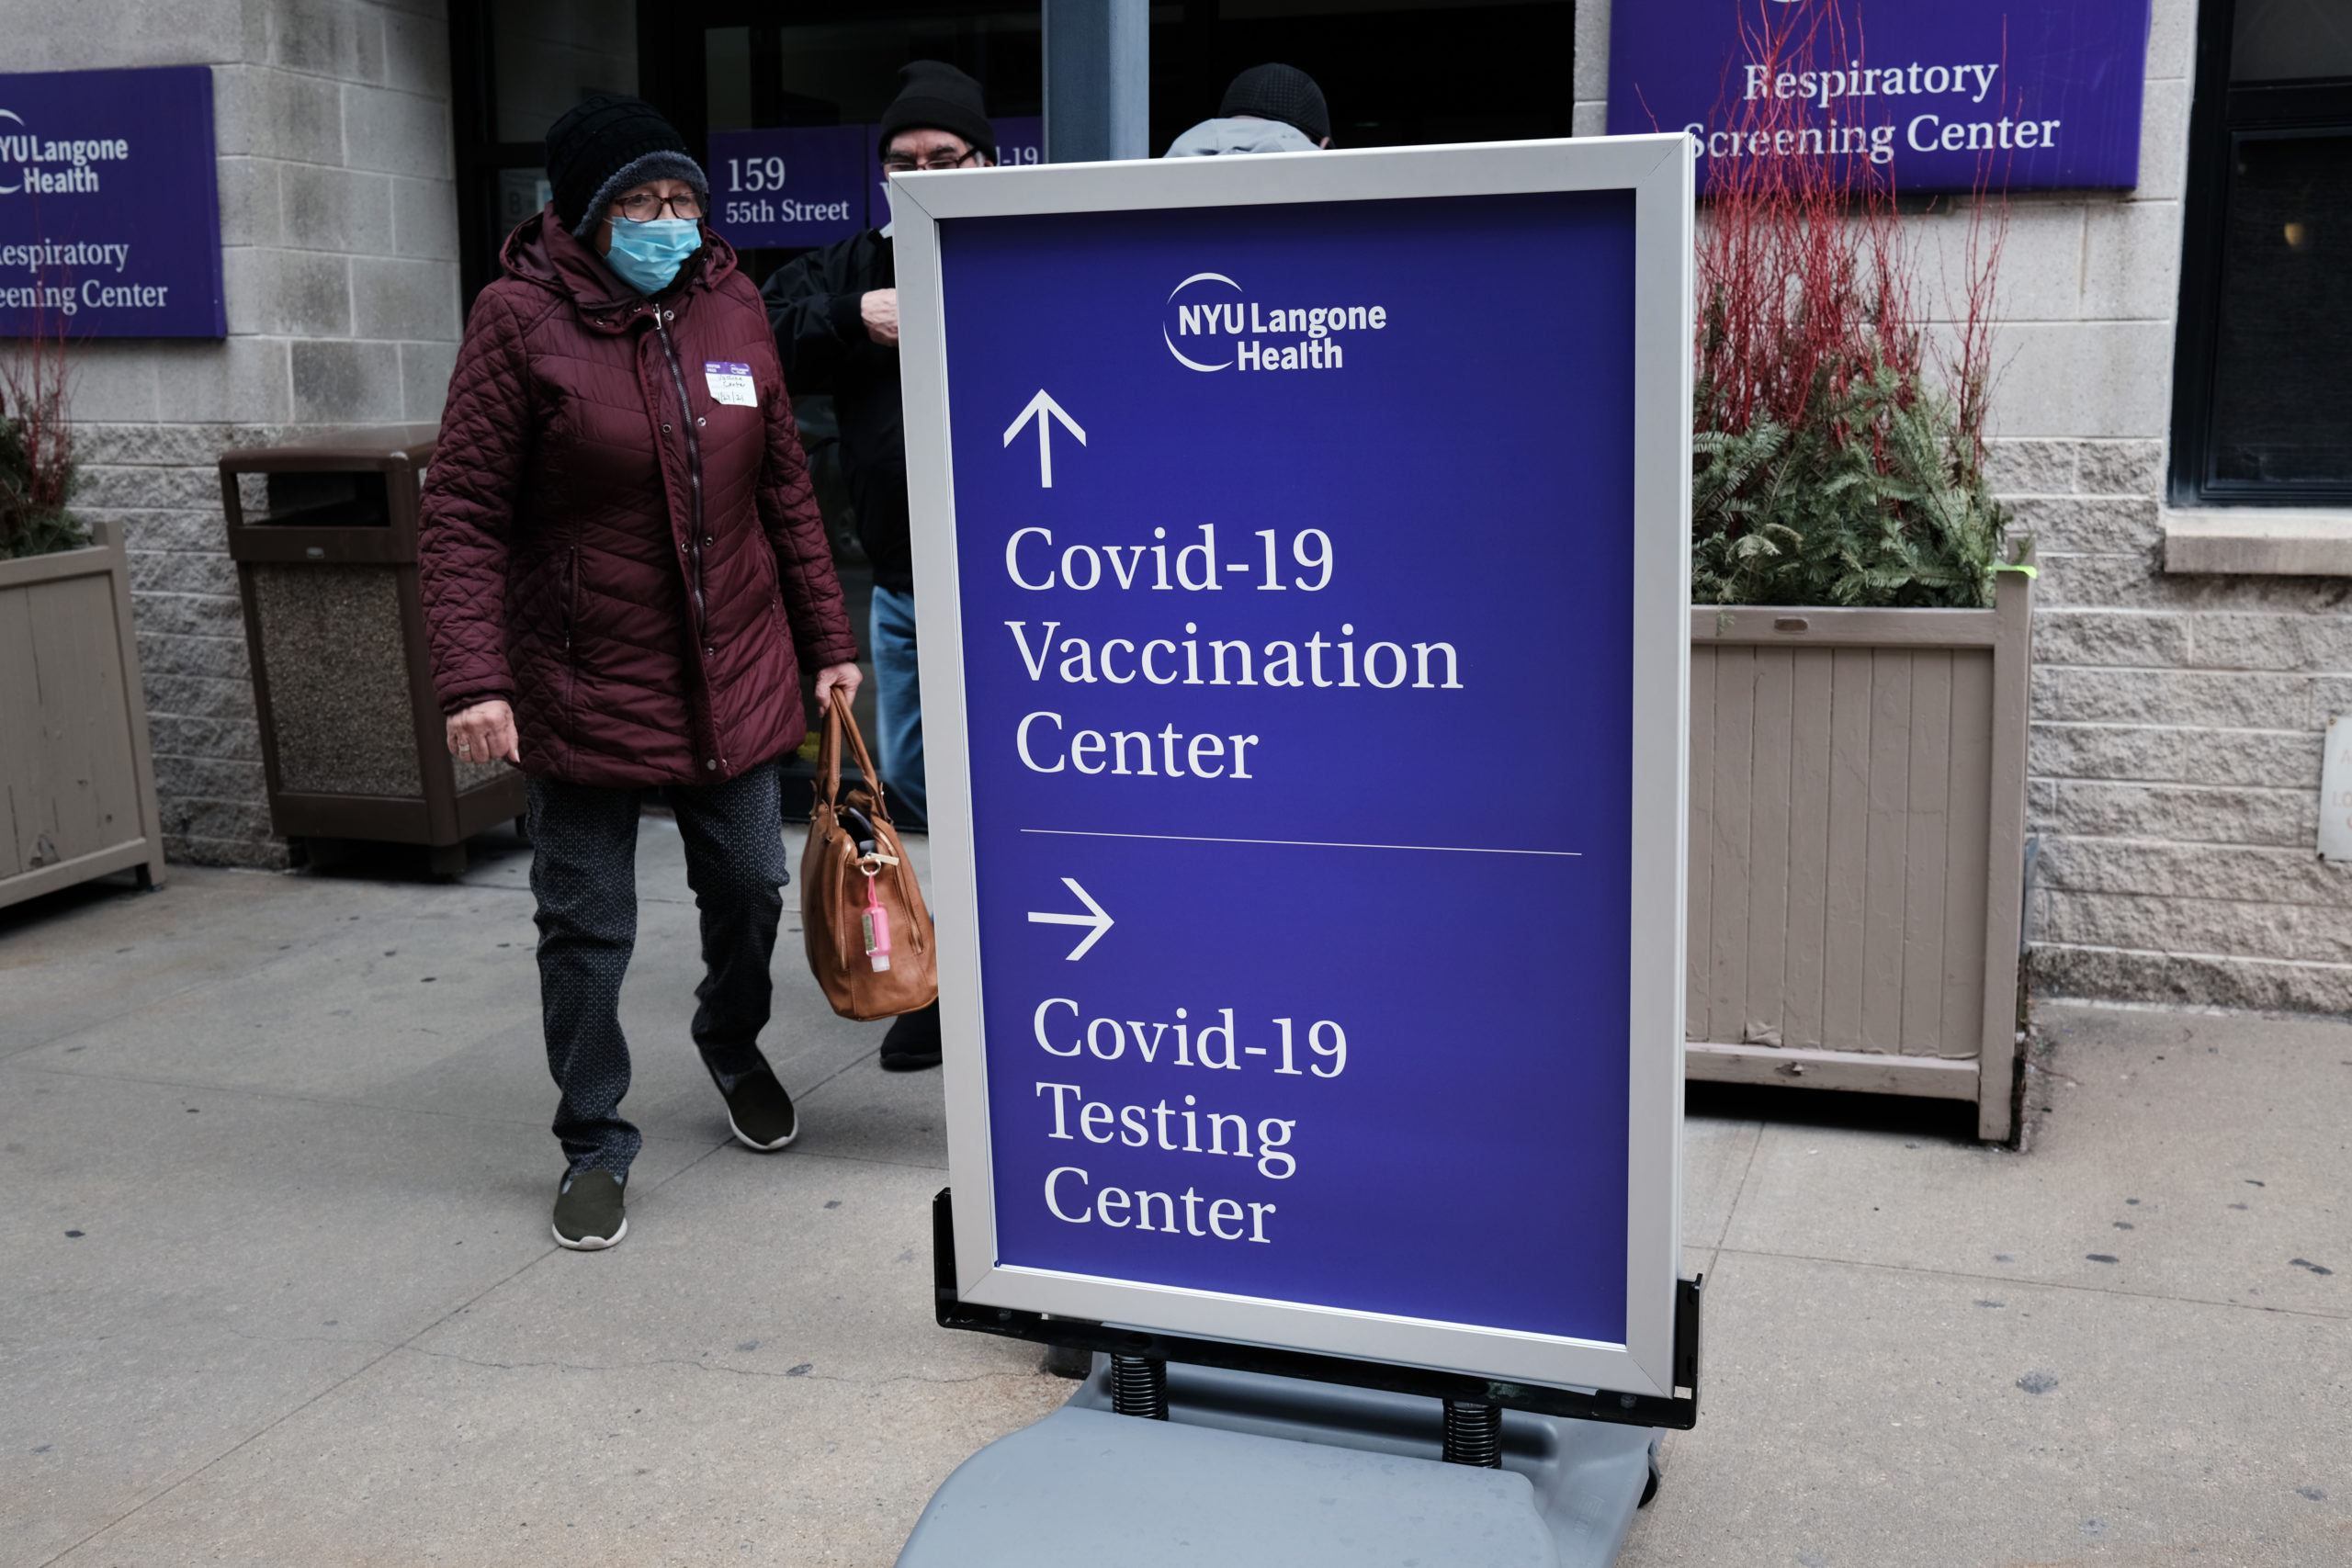 People walk by a sign for both a Covid-19 testing clinic and a Covid vaccination location on Jan. 27 in New York City. (Spencer Platt/Getty Images)